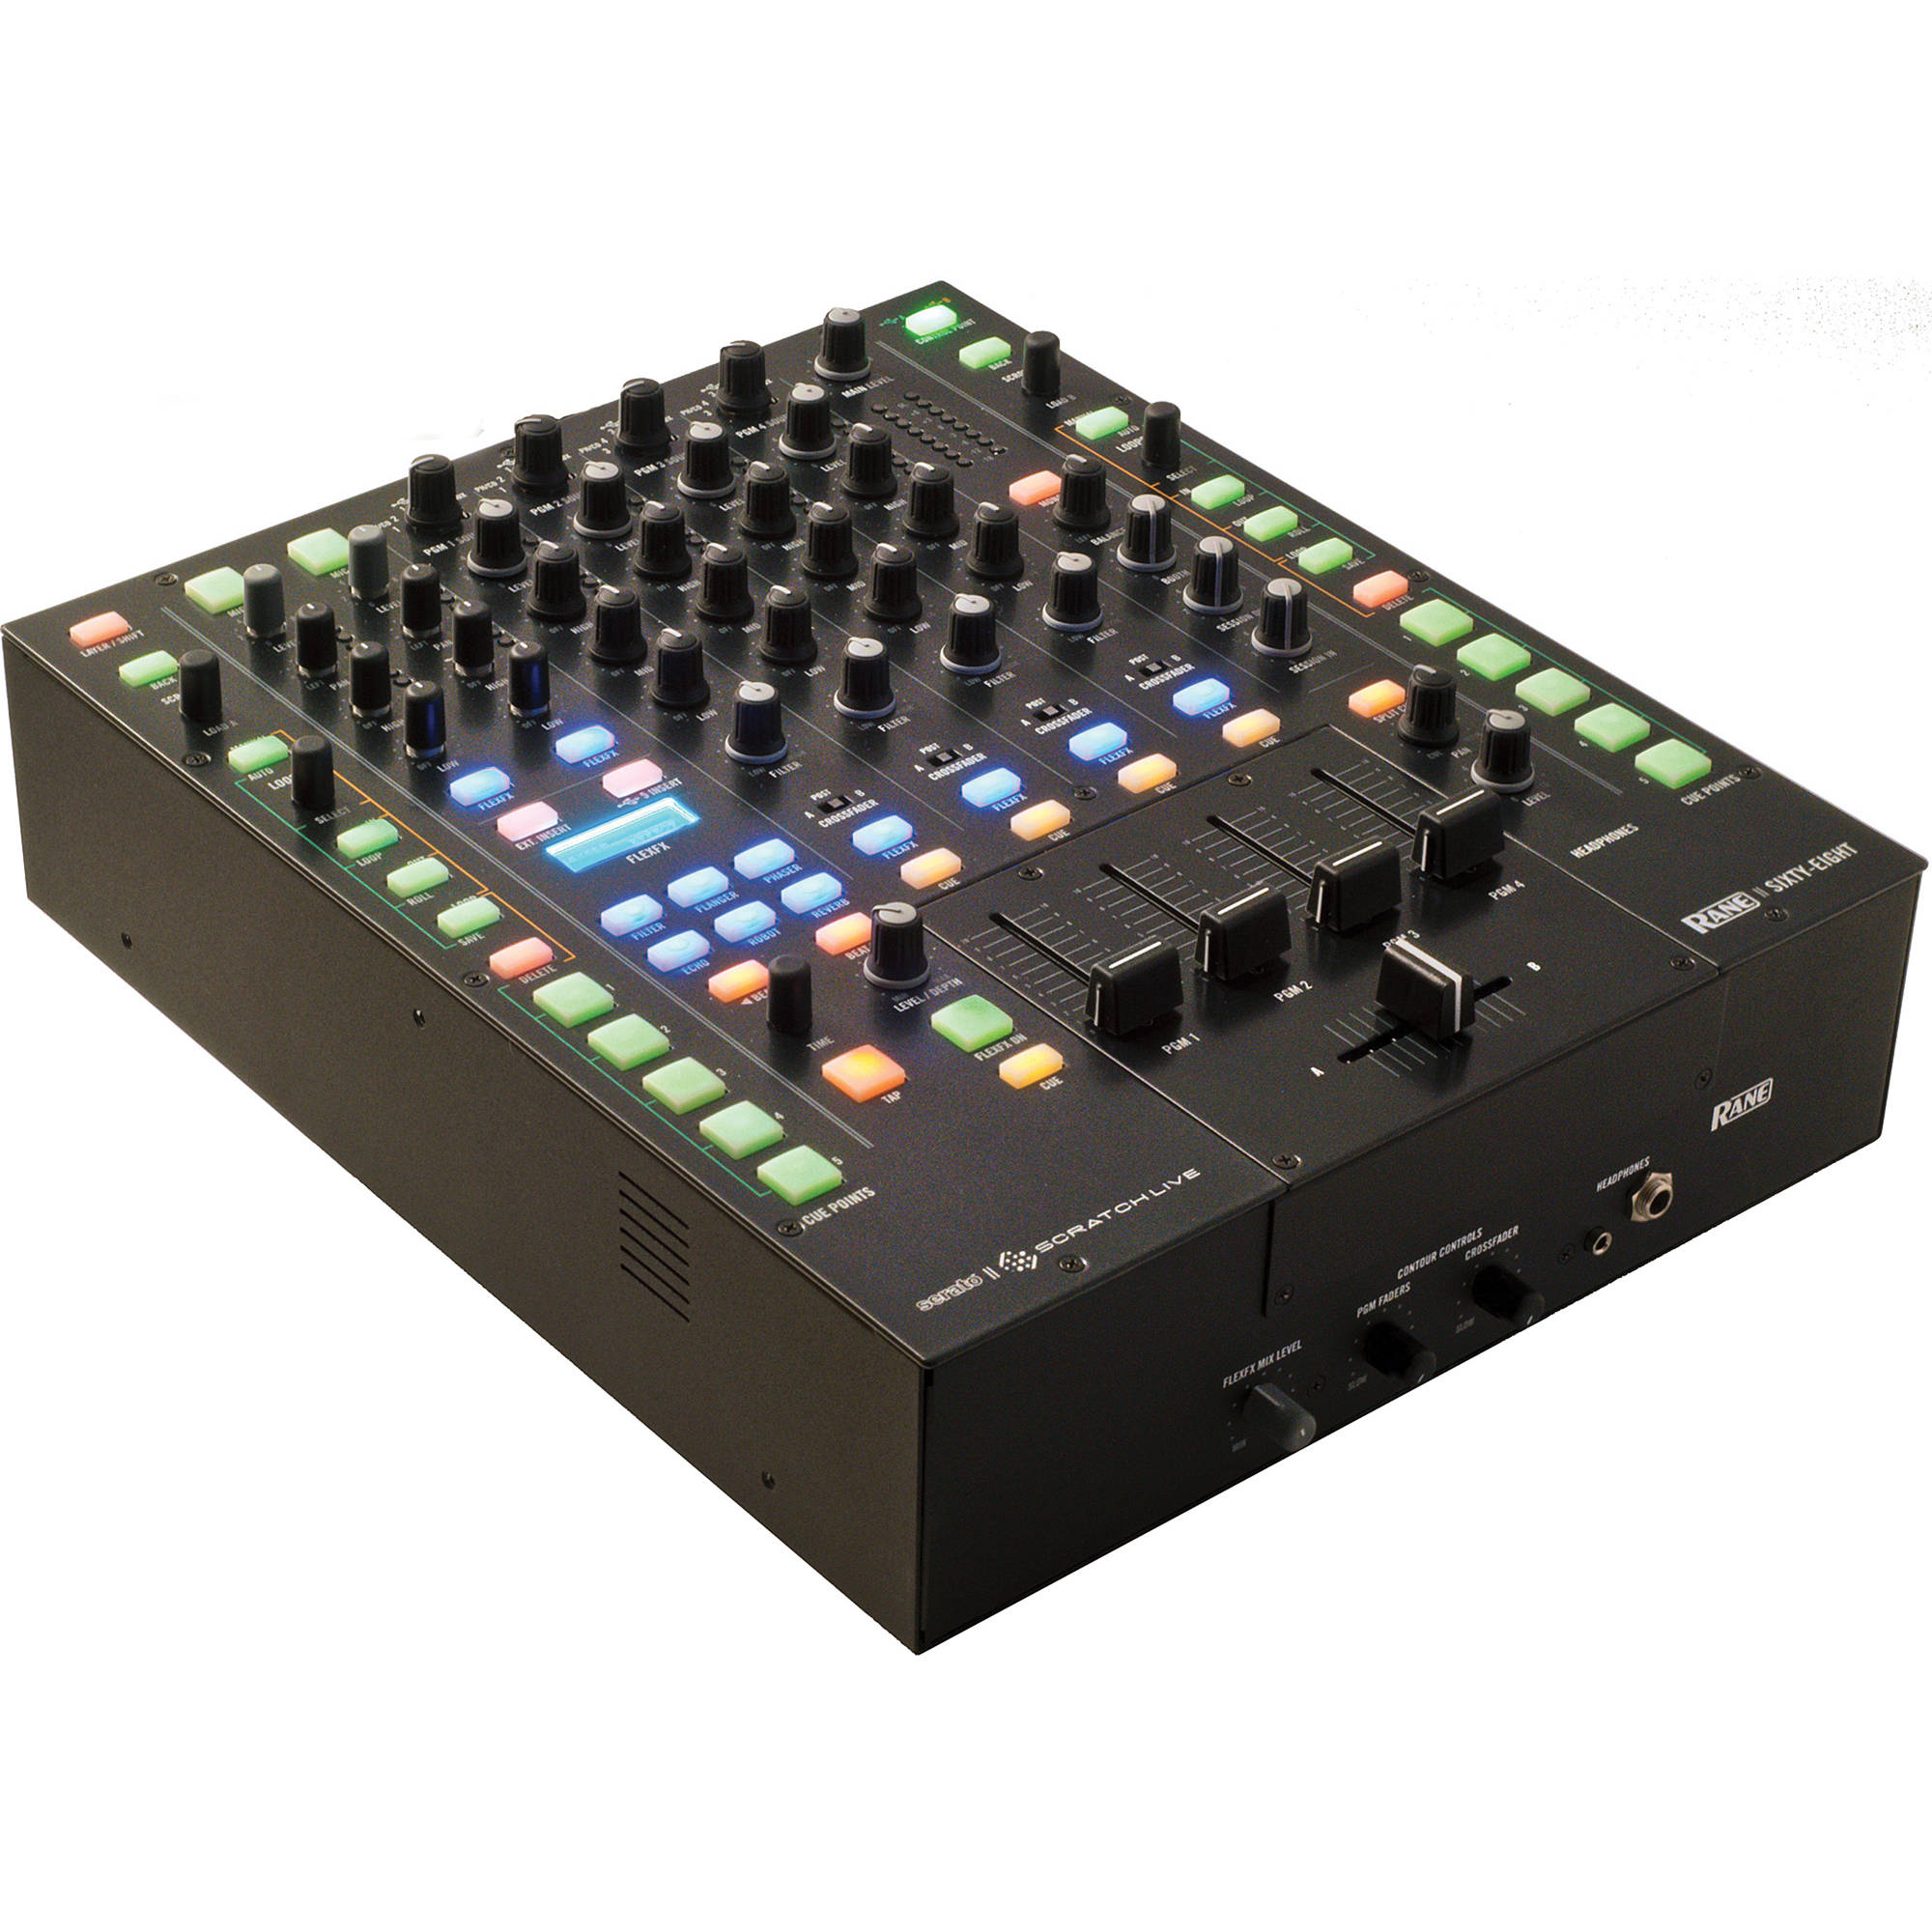 dj mixer professional - photo #34